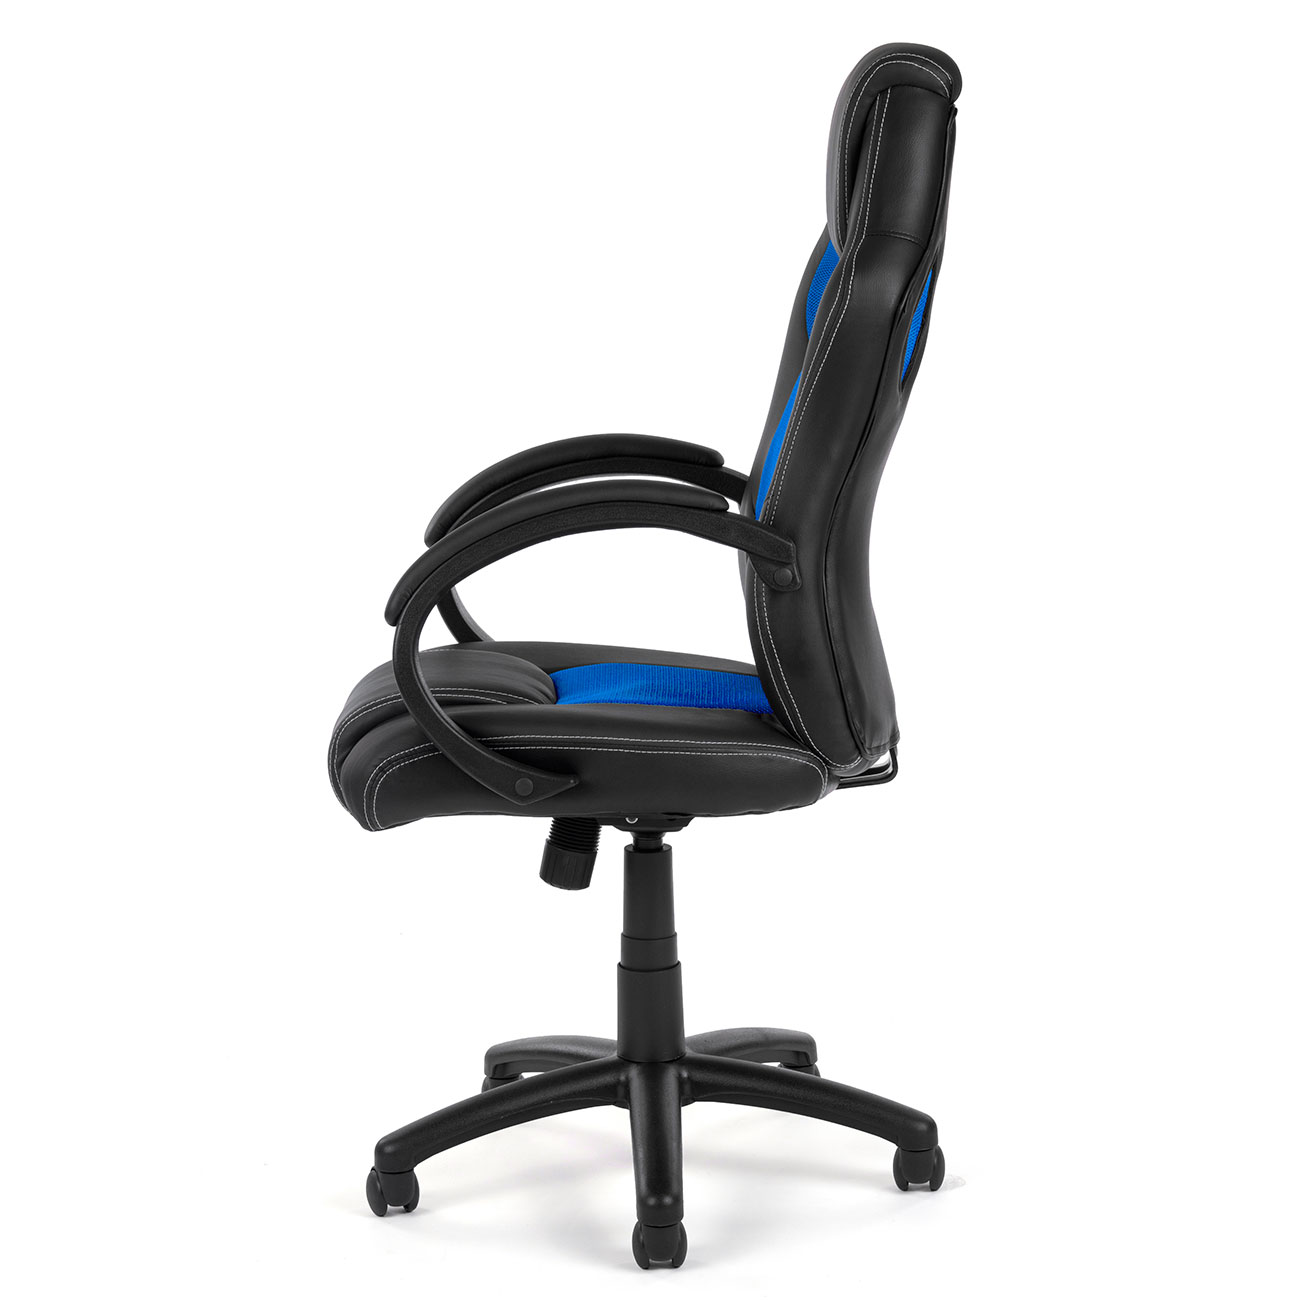 chaise bureau fauteuil si ge racing gamer sportiv ordinateur accoudoir noir bleu ebay. Black Bedroom Furniture Sets. Home Design Ideas